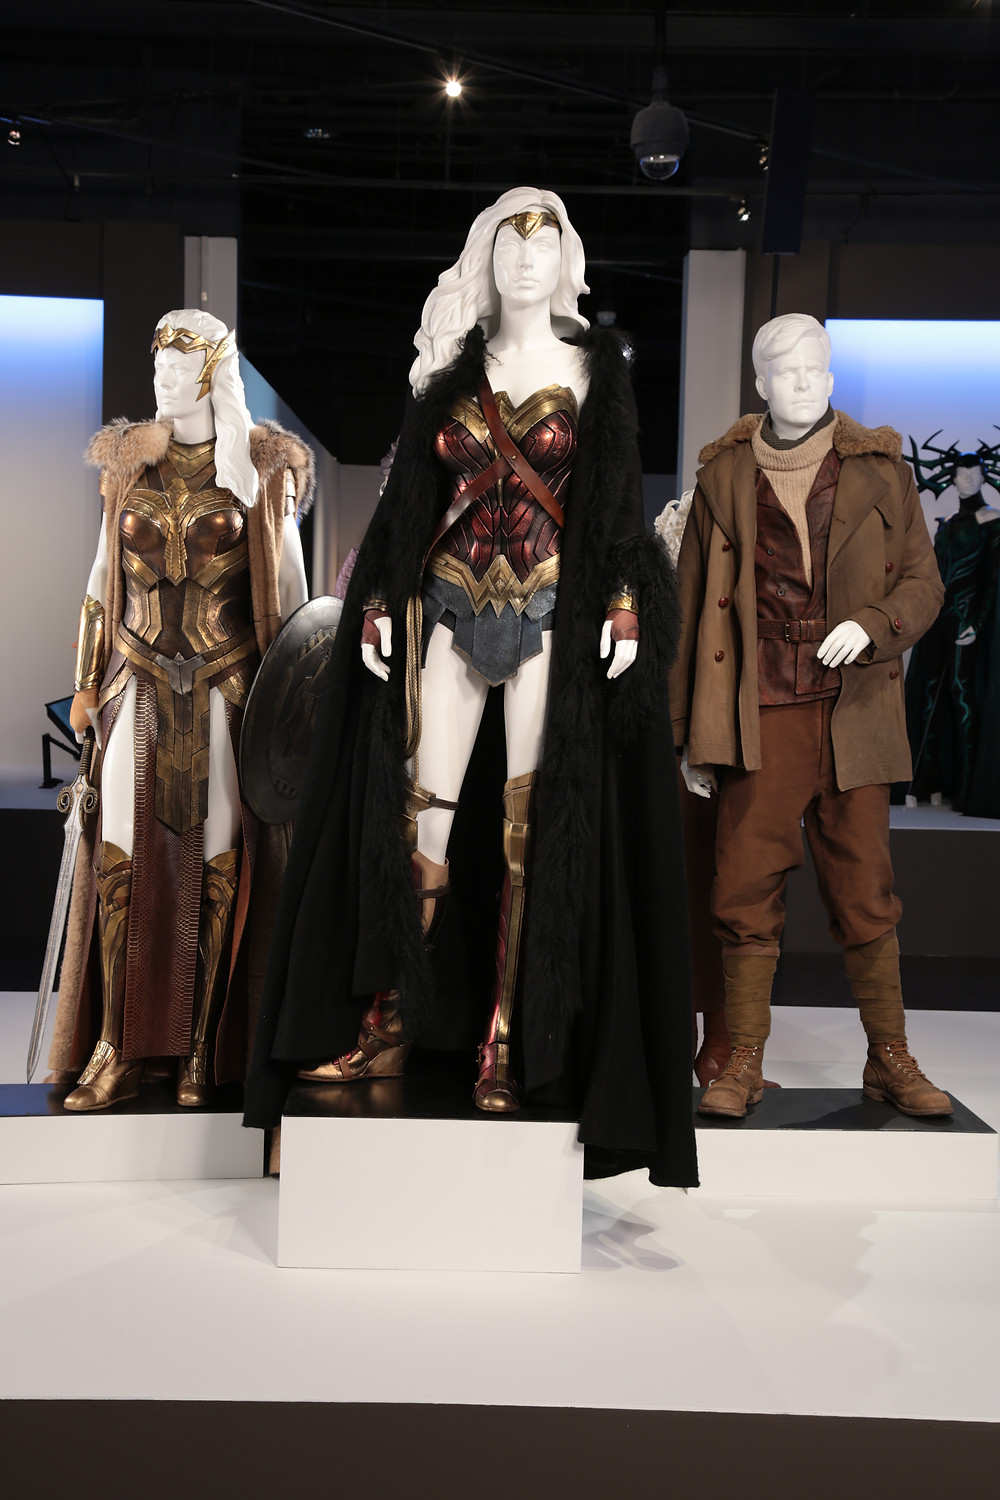 "Wonder Woman"" costumes by Lindy Hemming. (L to R) Costumes worn by actors: Connie Nielsen as Hippolyta, Gal Gadot as Diana Prince/Wonder Woman, Chris Pine as Steve Trevor."